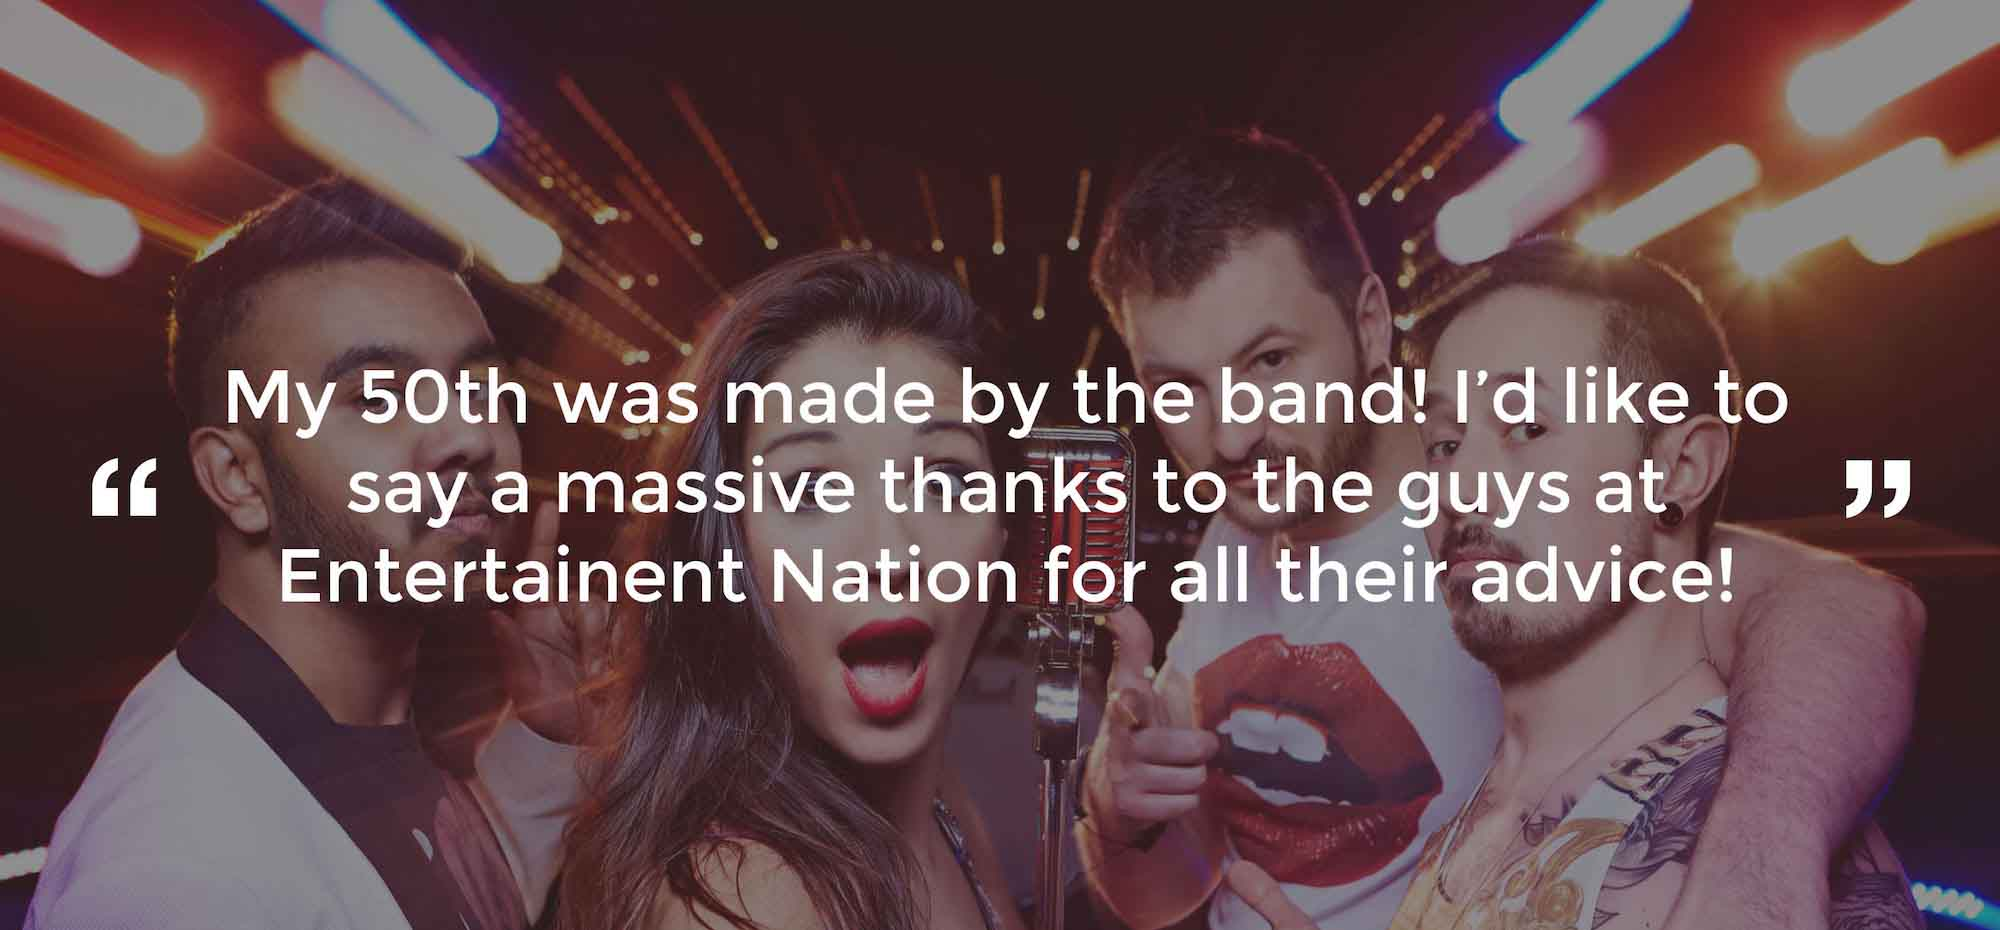 Client Review of a Party Band Cambridgeshire